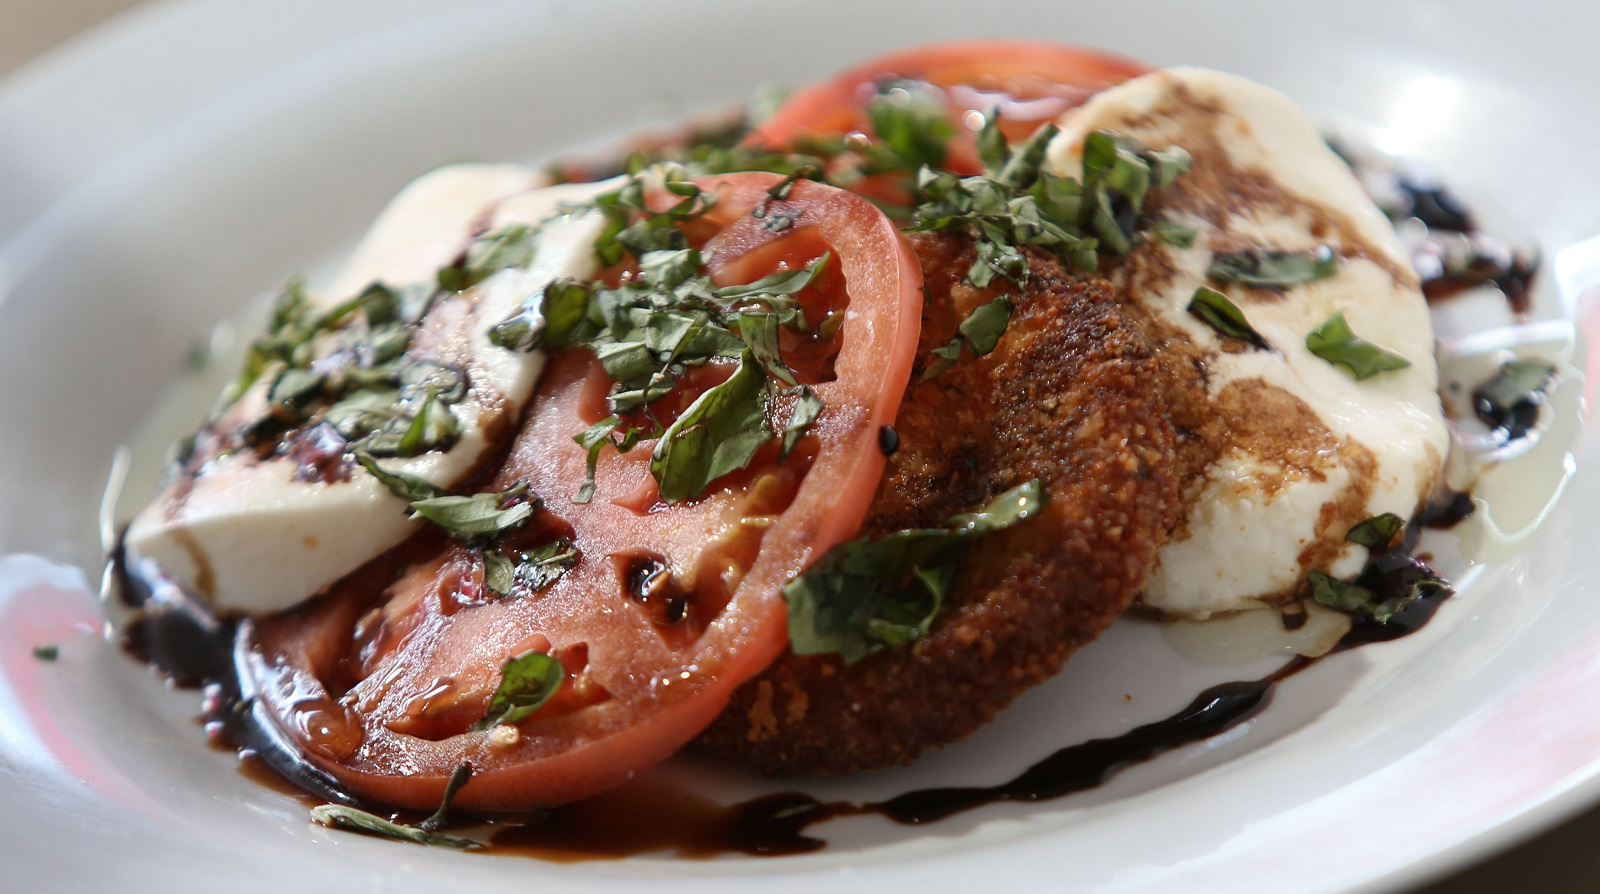 Share Kitchen's eggplant Caprese is made with fried eggplant, tomato ...